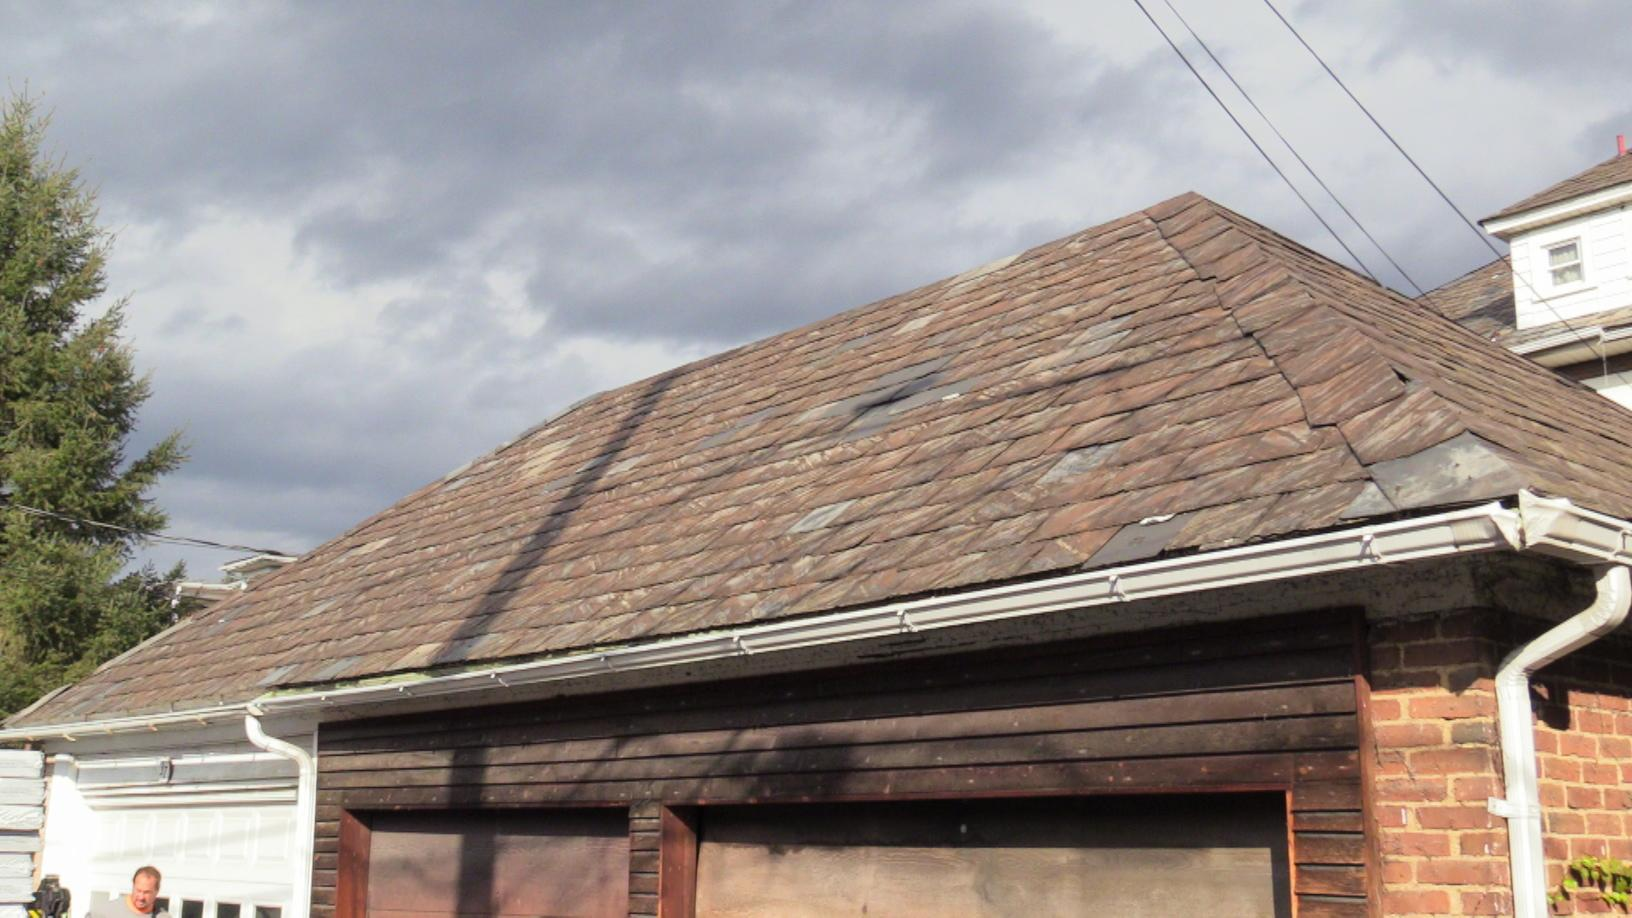 Another Garage Roof Shot